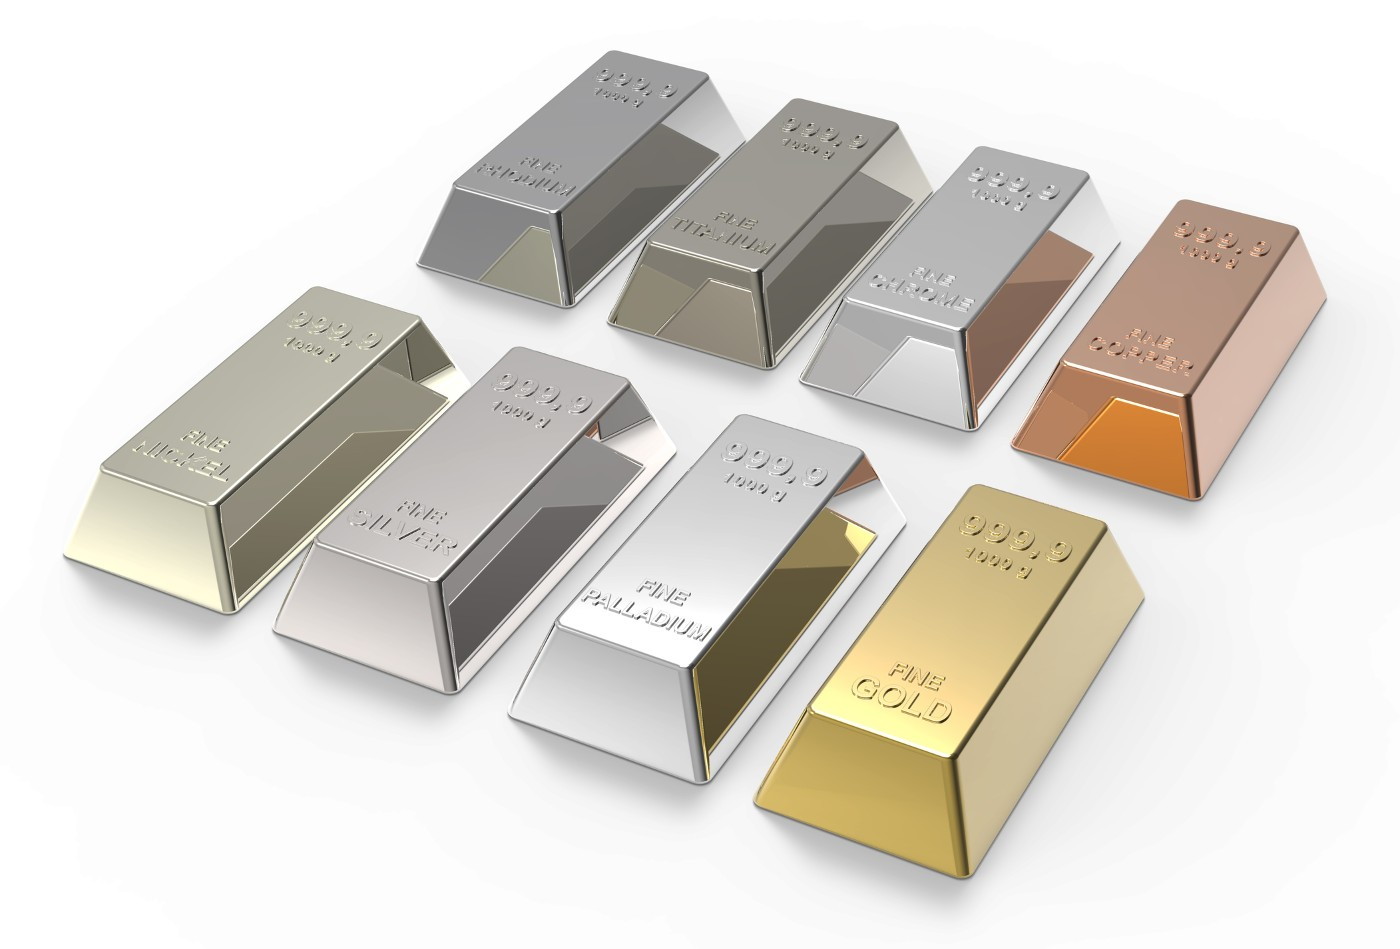 https://tickertapecdn.tdameritrade.com/assets/images/pages/md/Bars of gold and other metals: Industrial and precious metal stock market outlook